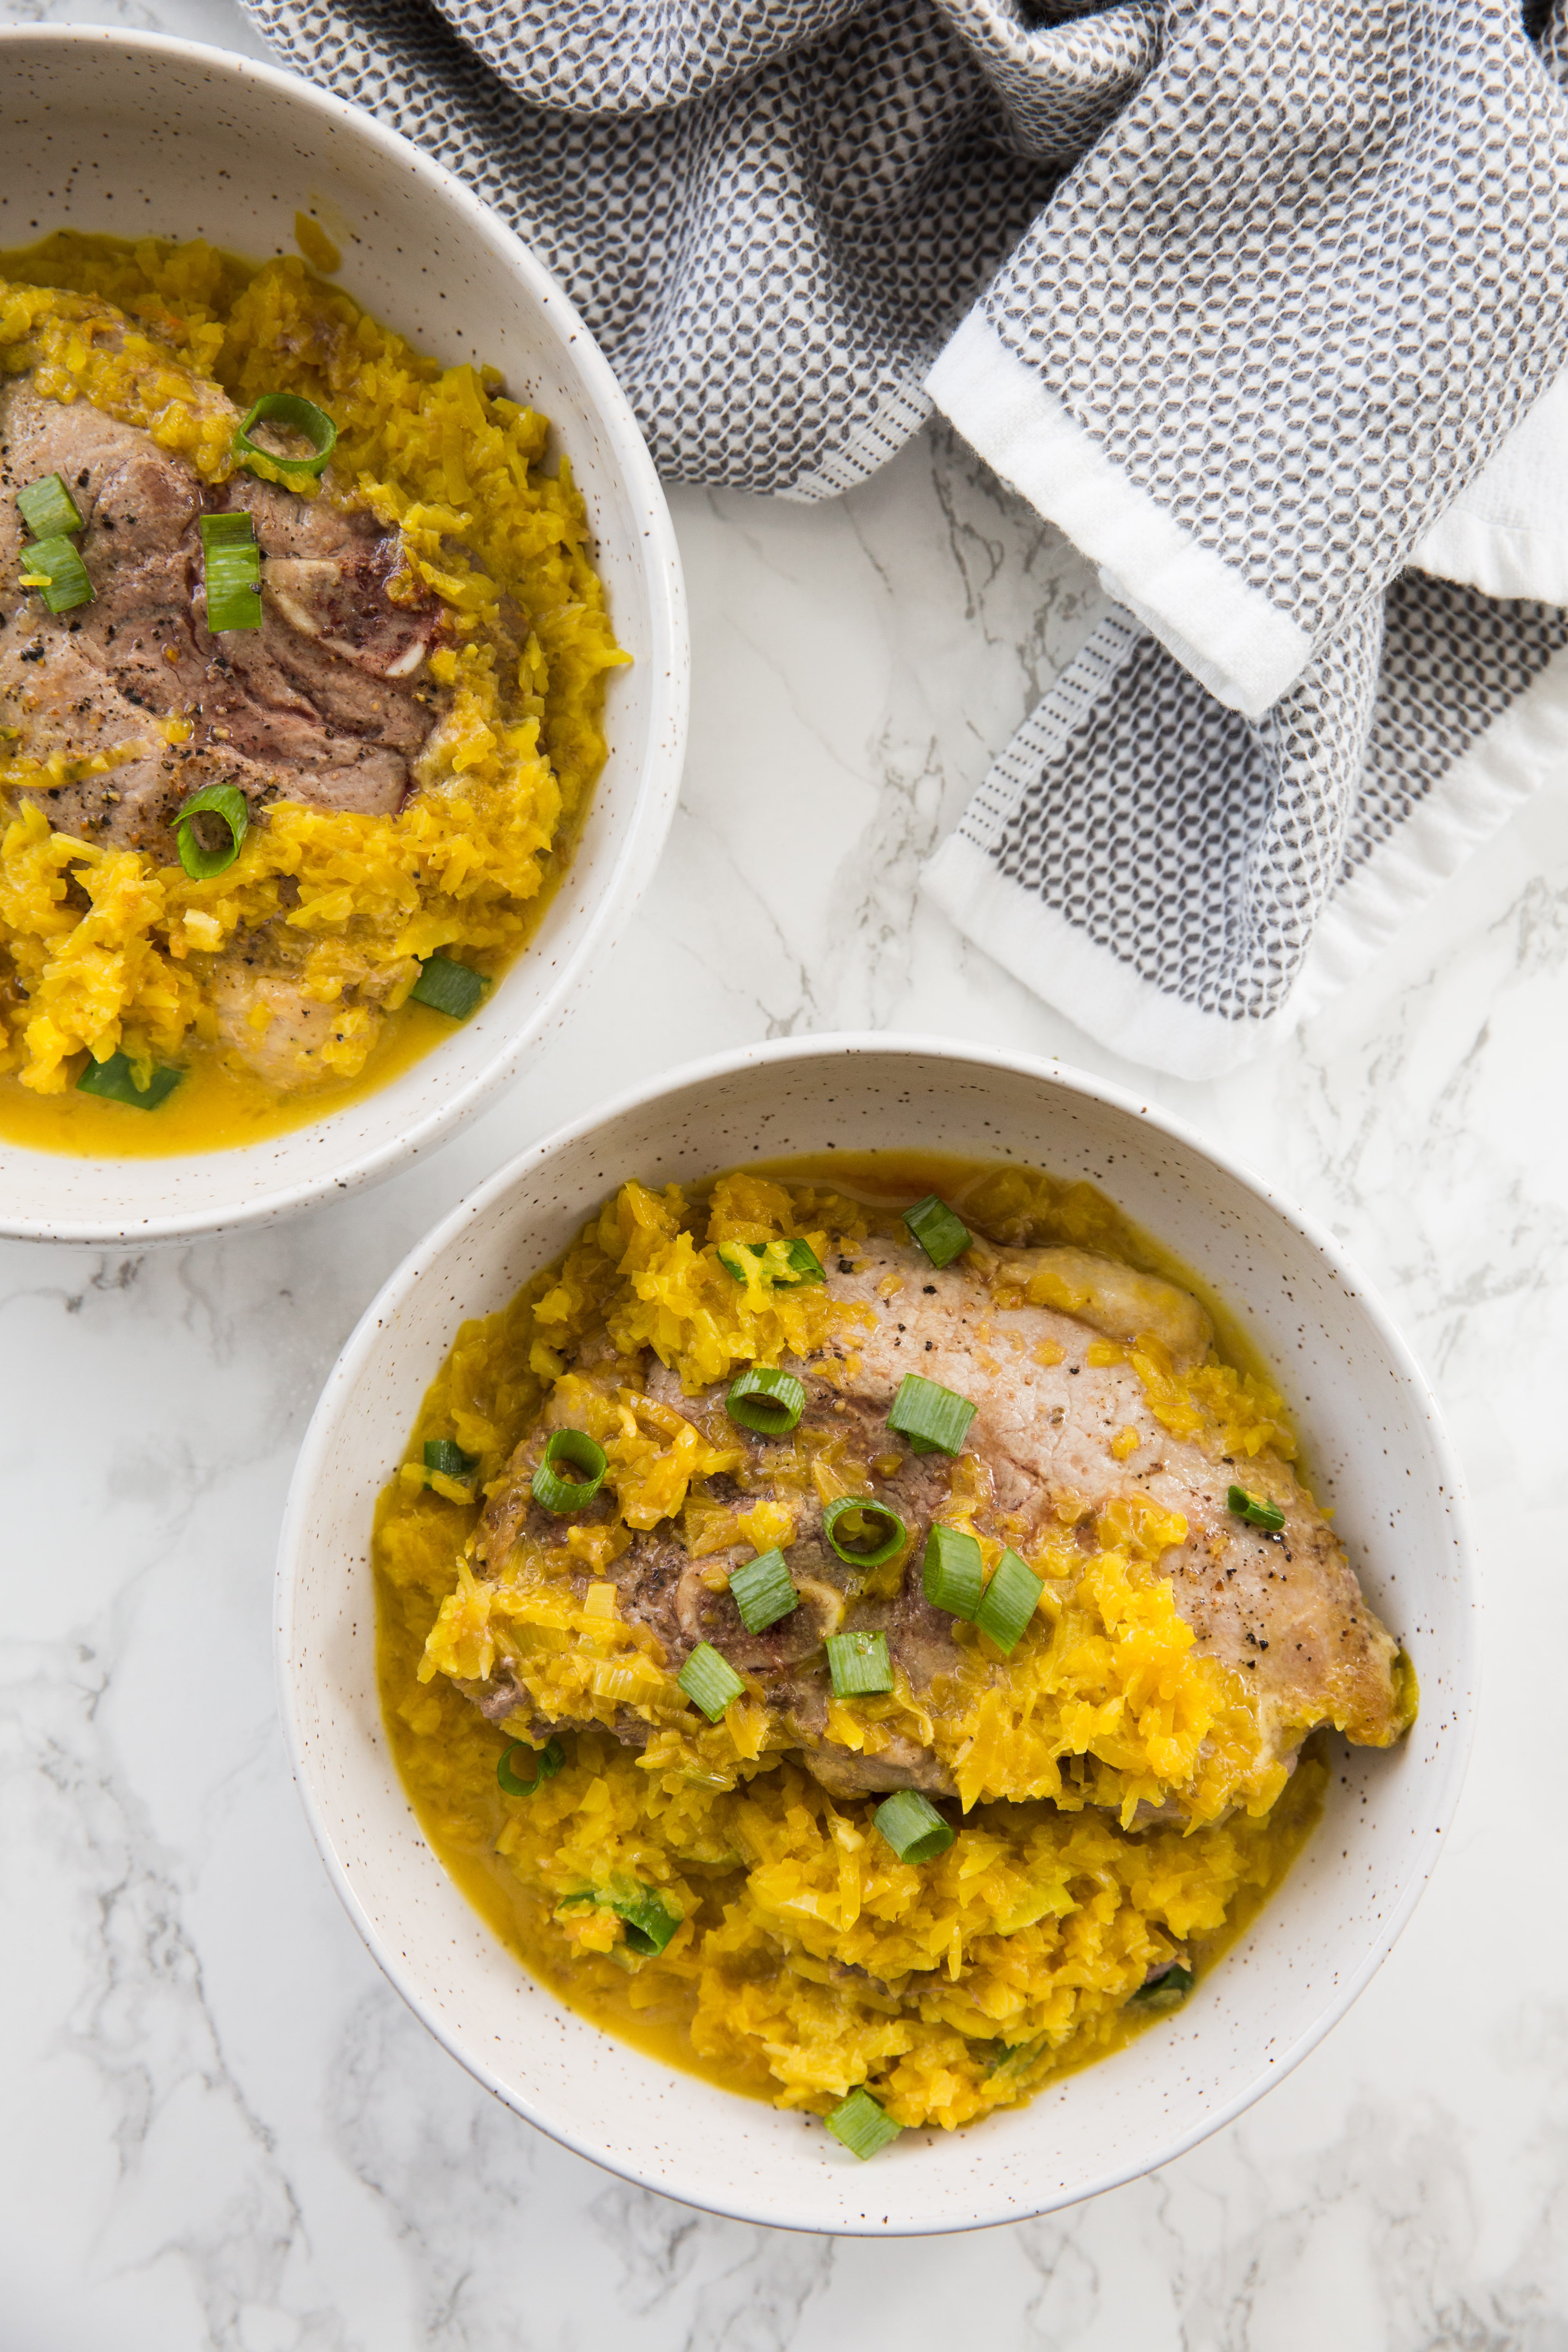 Creamy Coconut Golden Beet Rice with Pork Chops